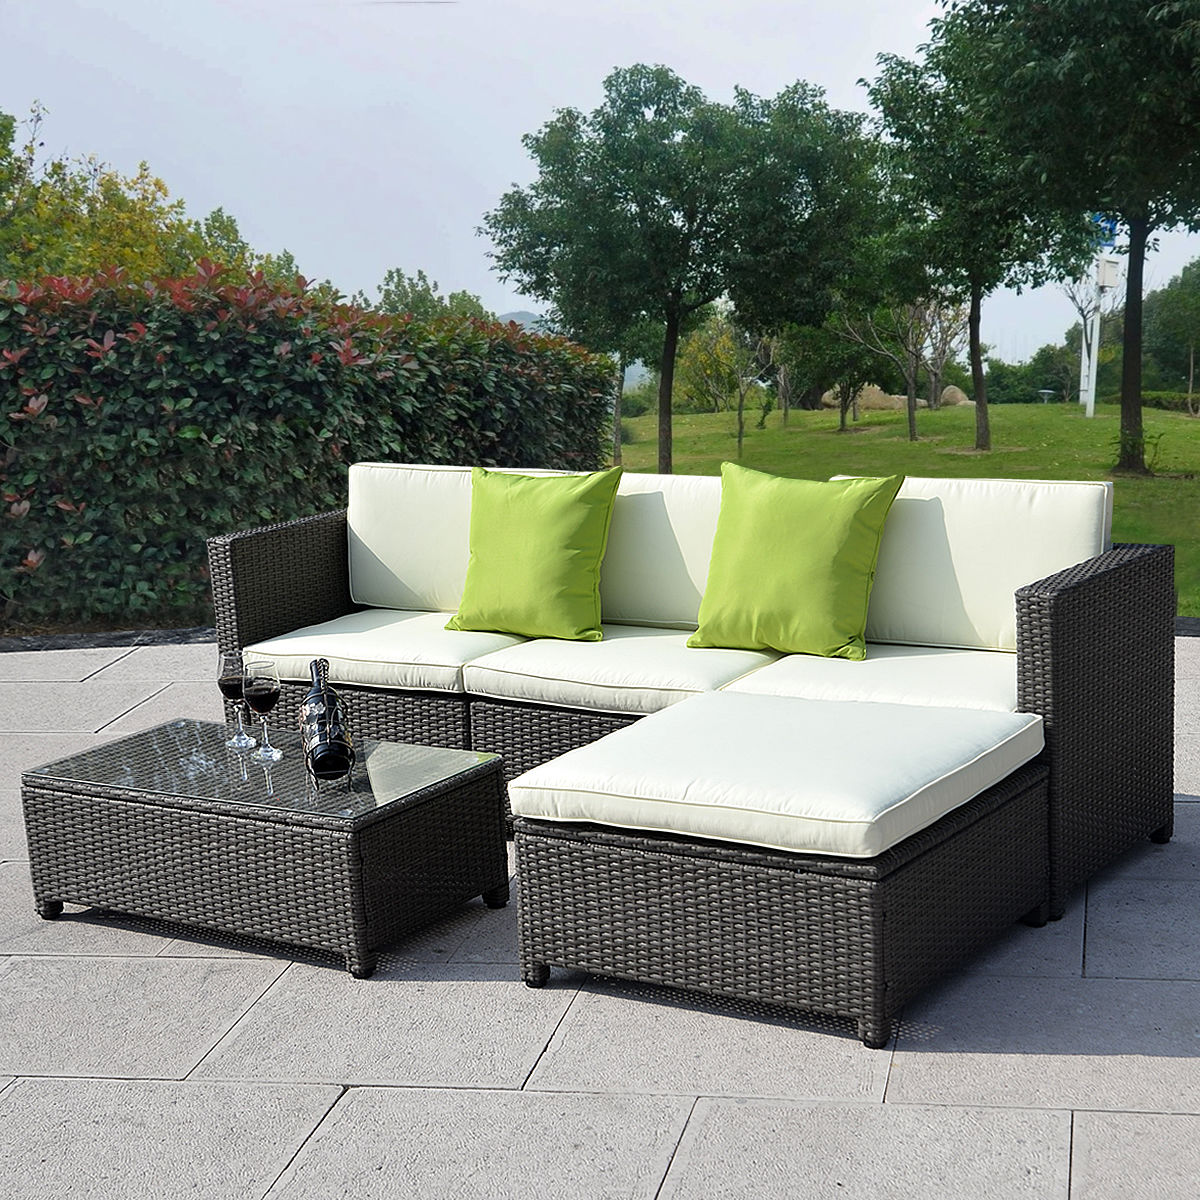 Outdoor Patio Furniture For Small Deck: Outdoor Patio Wicker Sofa Set